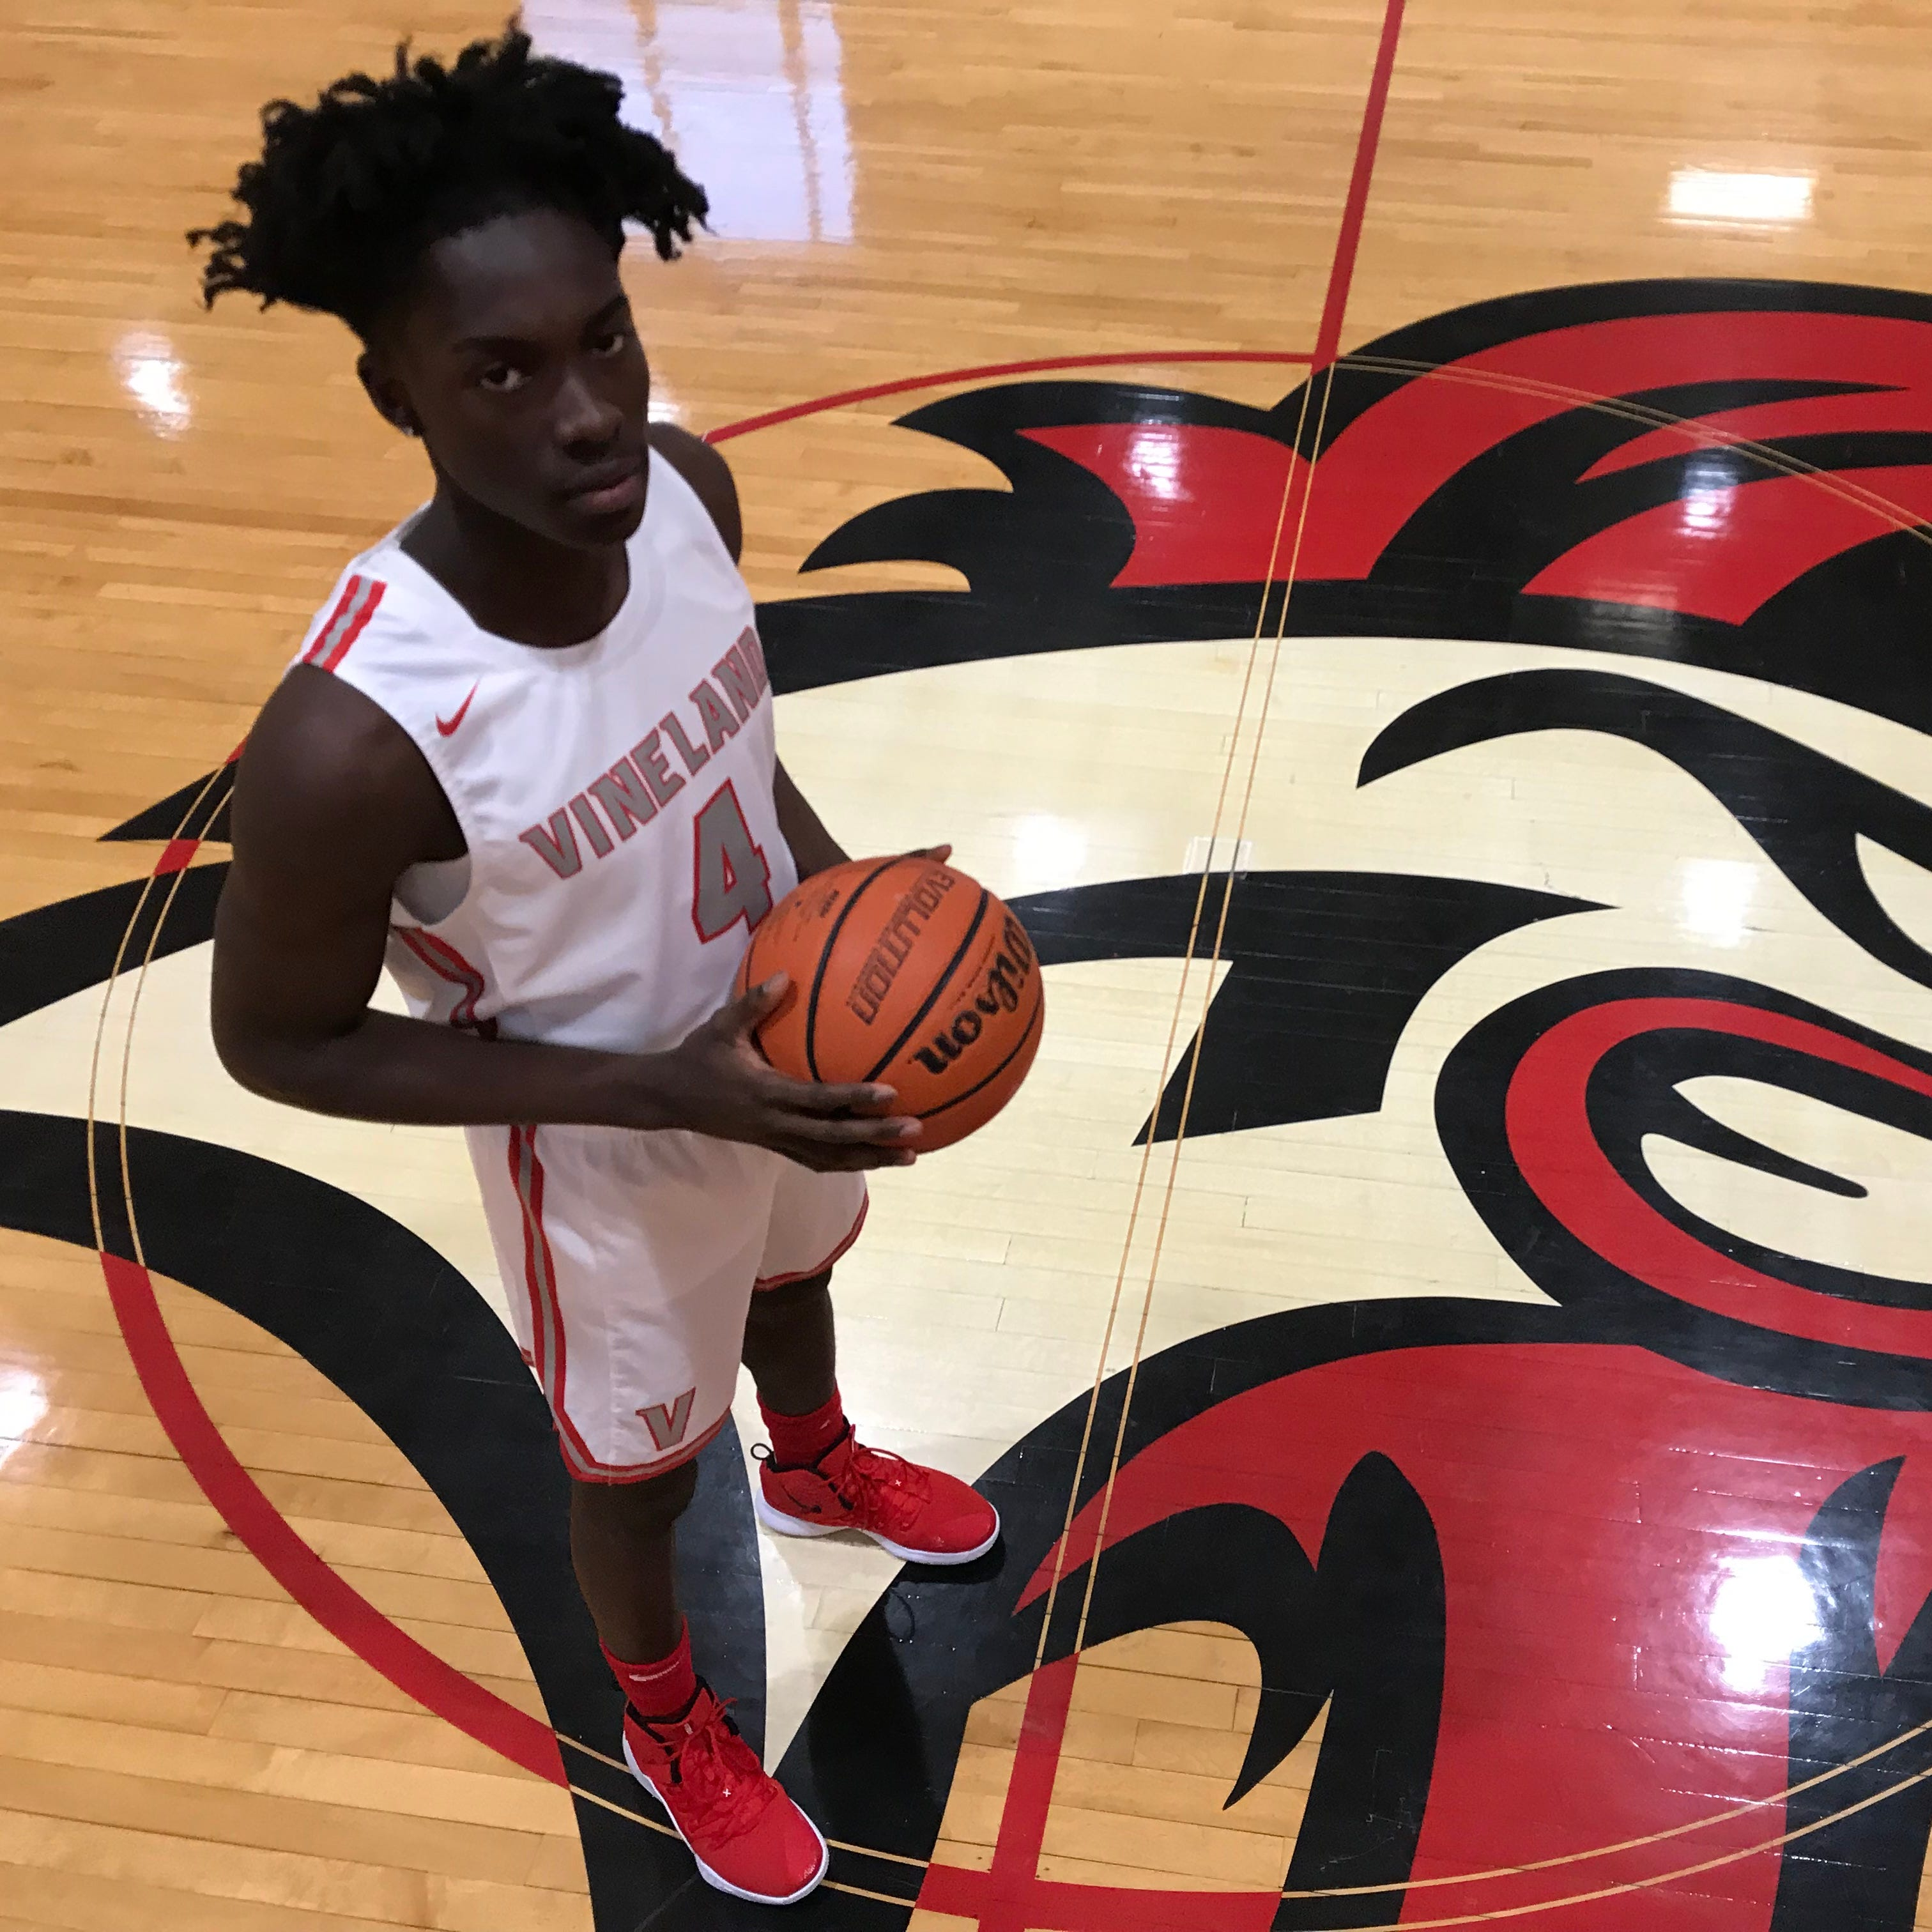 South Jersey basketball: Vineland's DJ Campbell close to joining 1,000-point club